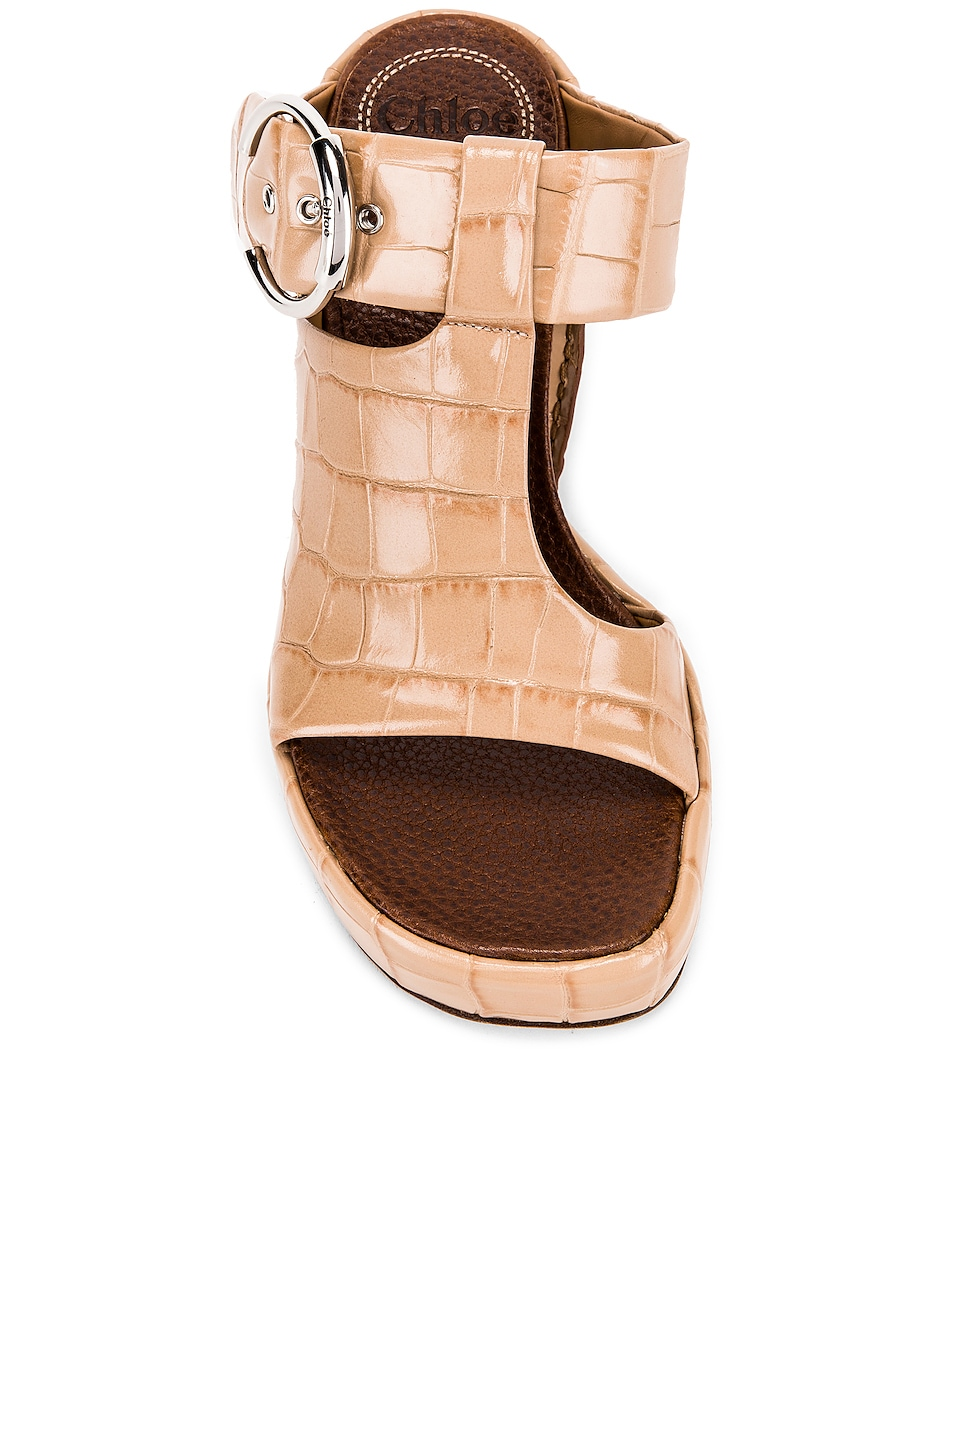 Image 4 of Chloe Buckle Platform Sandals in Nougat